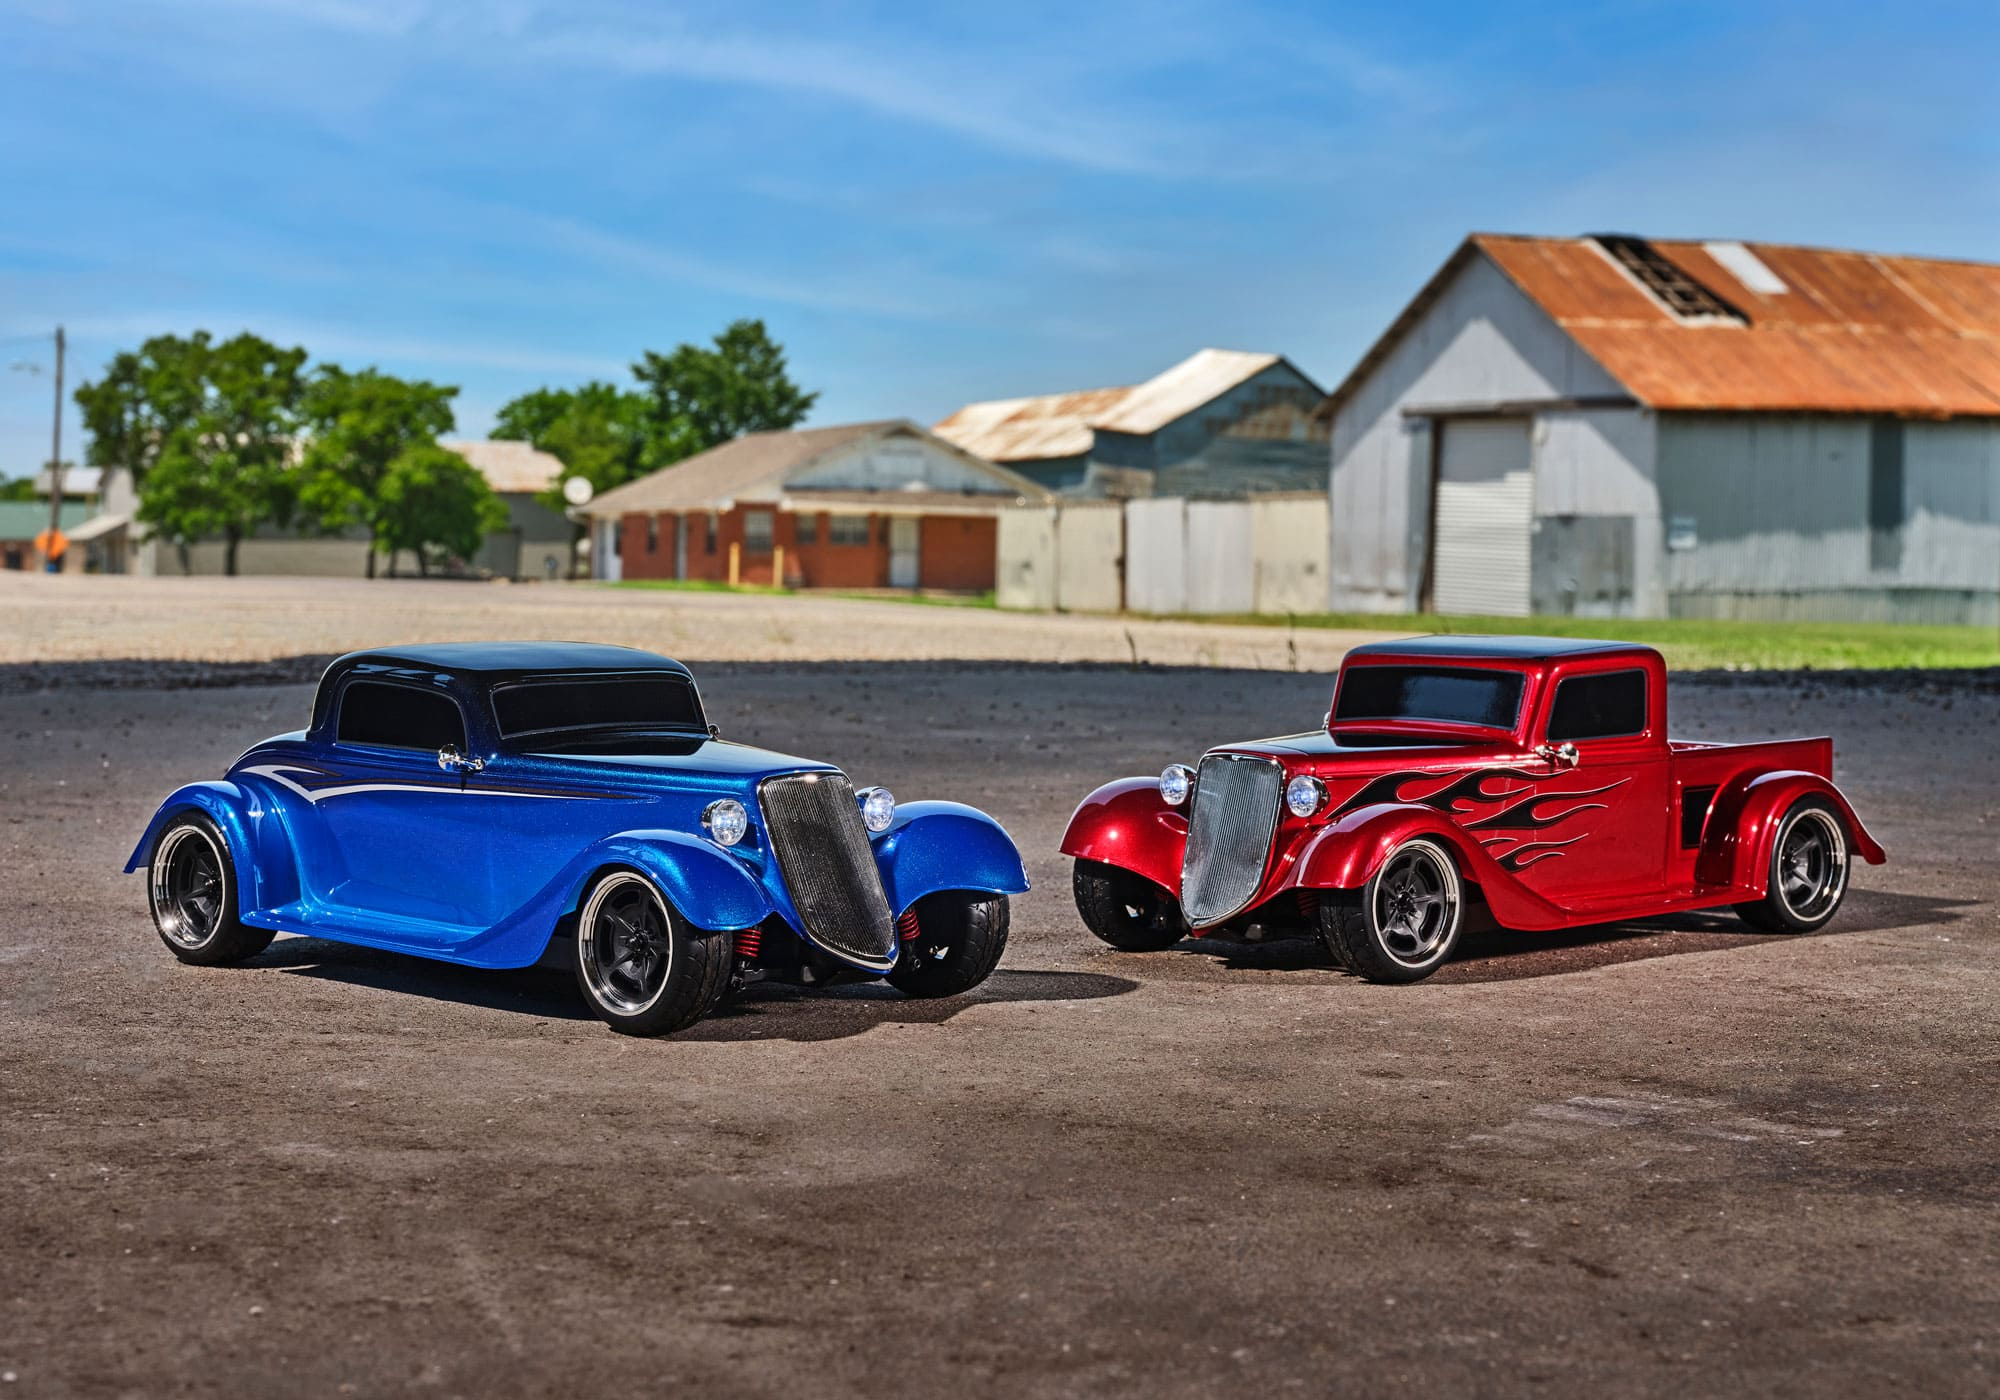 Get Rolling with Two New Hot Rods from Traxxas